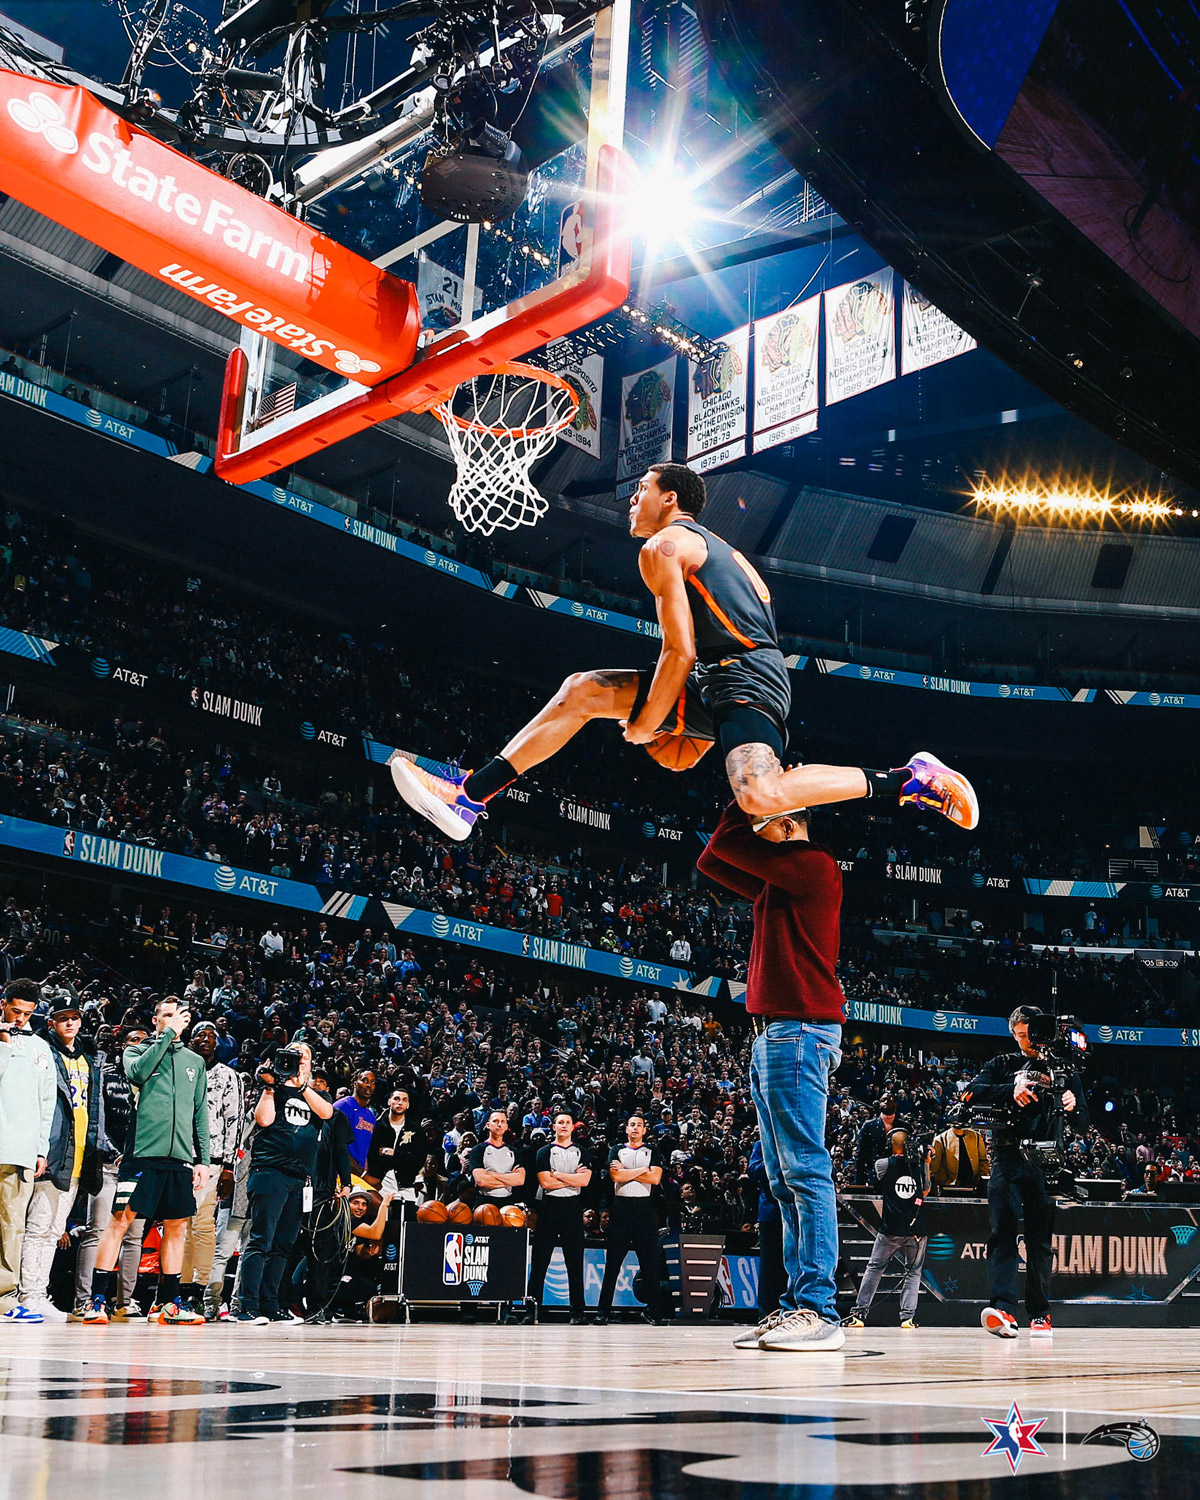 aaron gordon between the legs dunk 2020 nba dunk contest in chicago